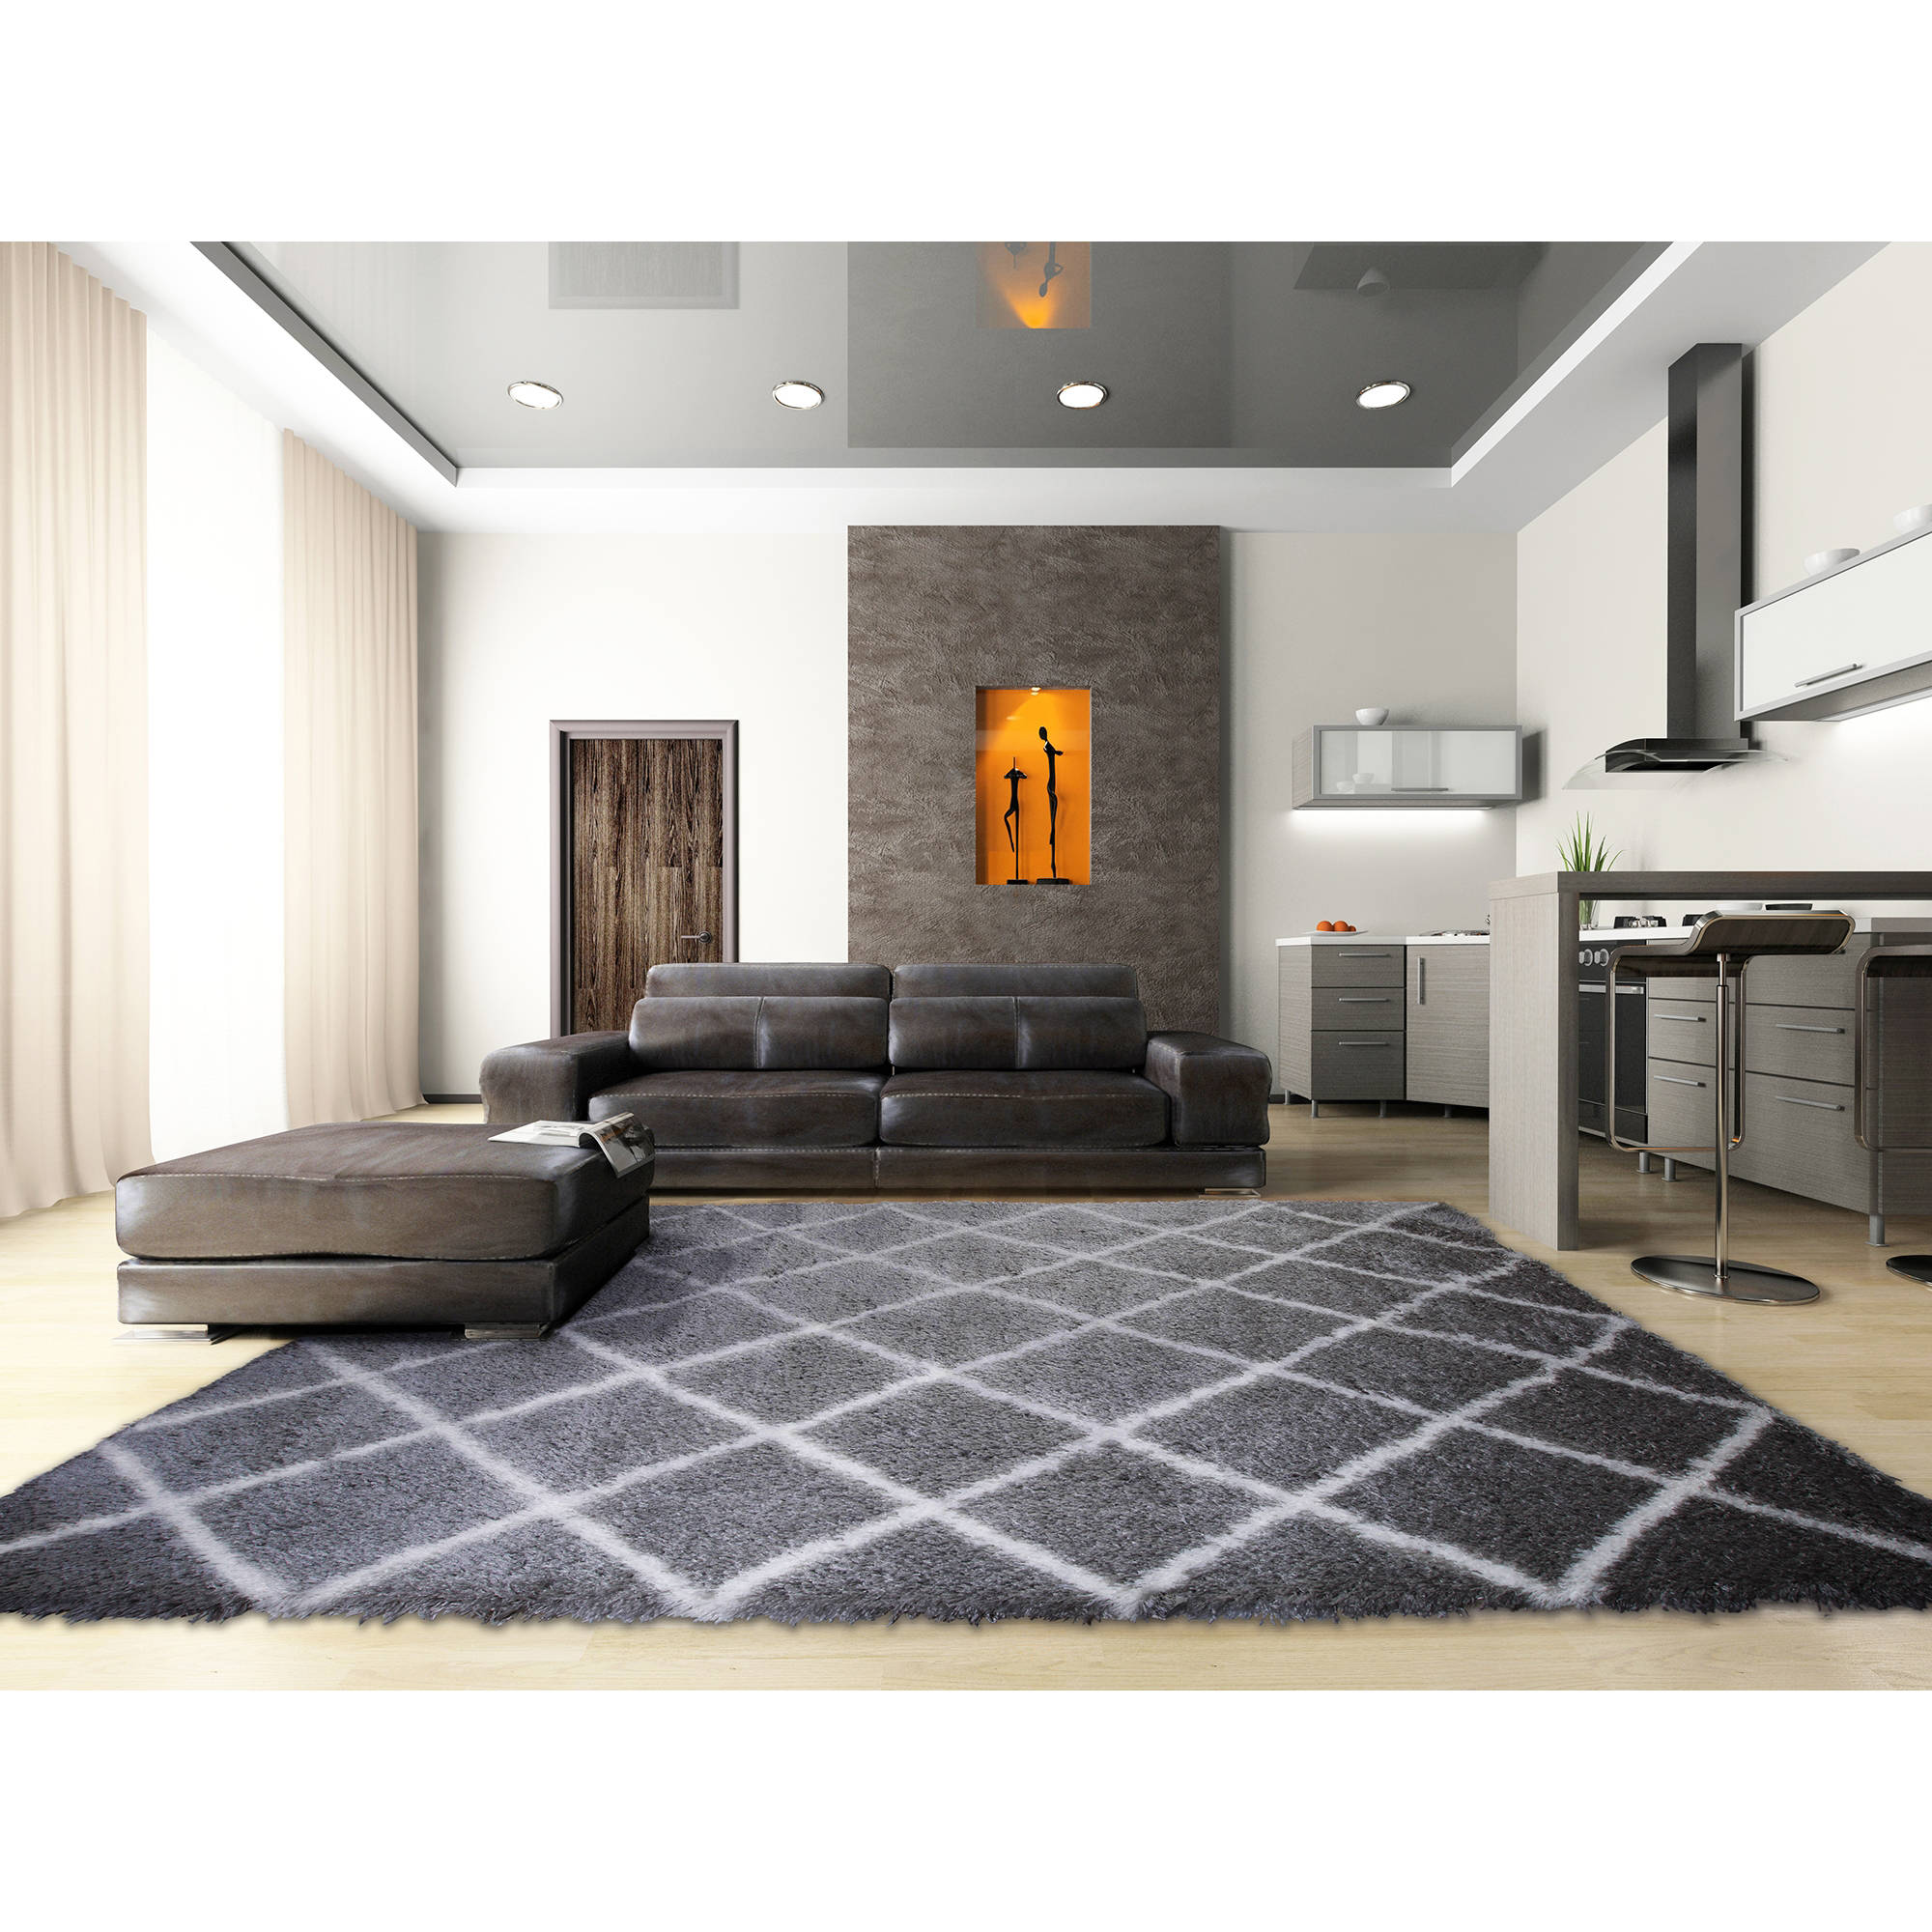 Home dynamix carmela collection plush microfiber shag area rug home dynamix carmela collection plush microfiber shag area rug walmart dailygadgetfo Gallery